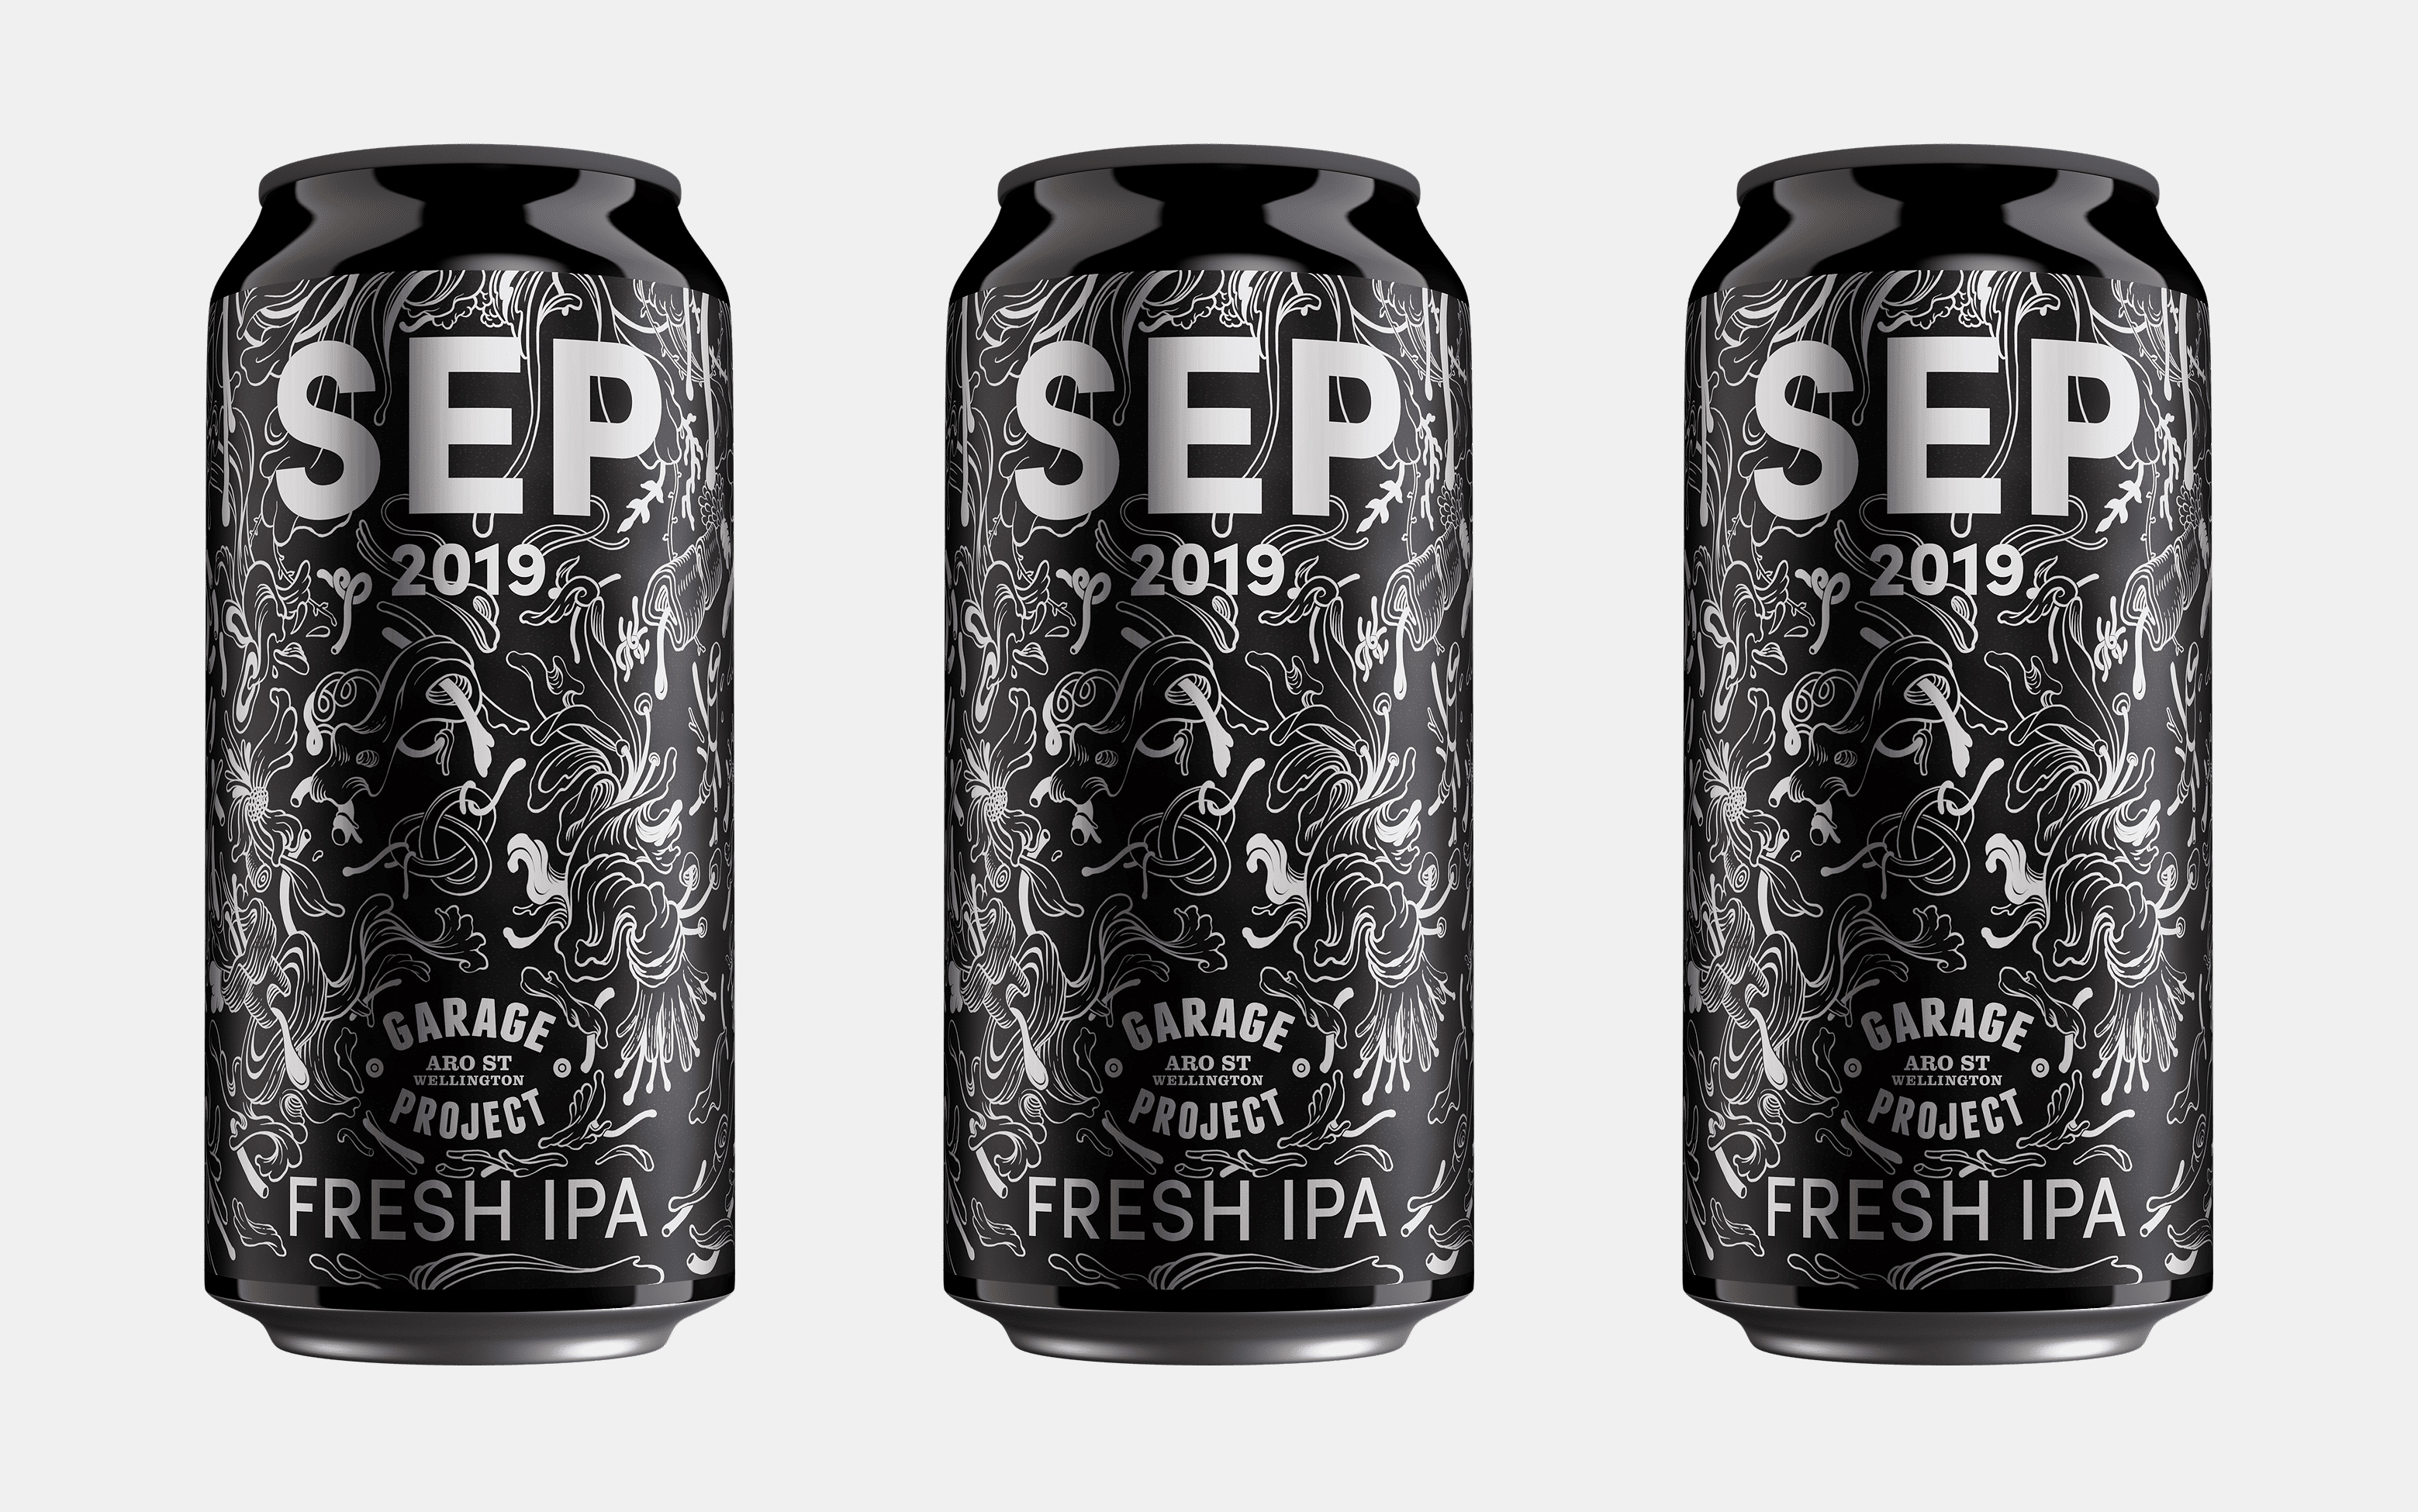 Garage Project Fresh September '19 IPA